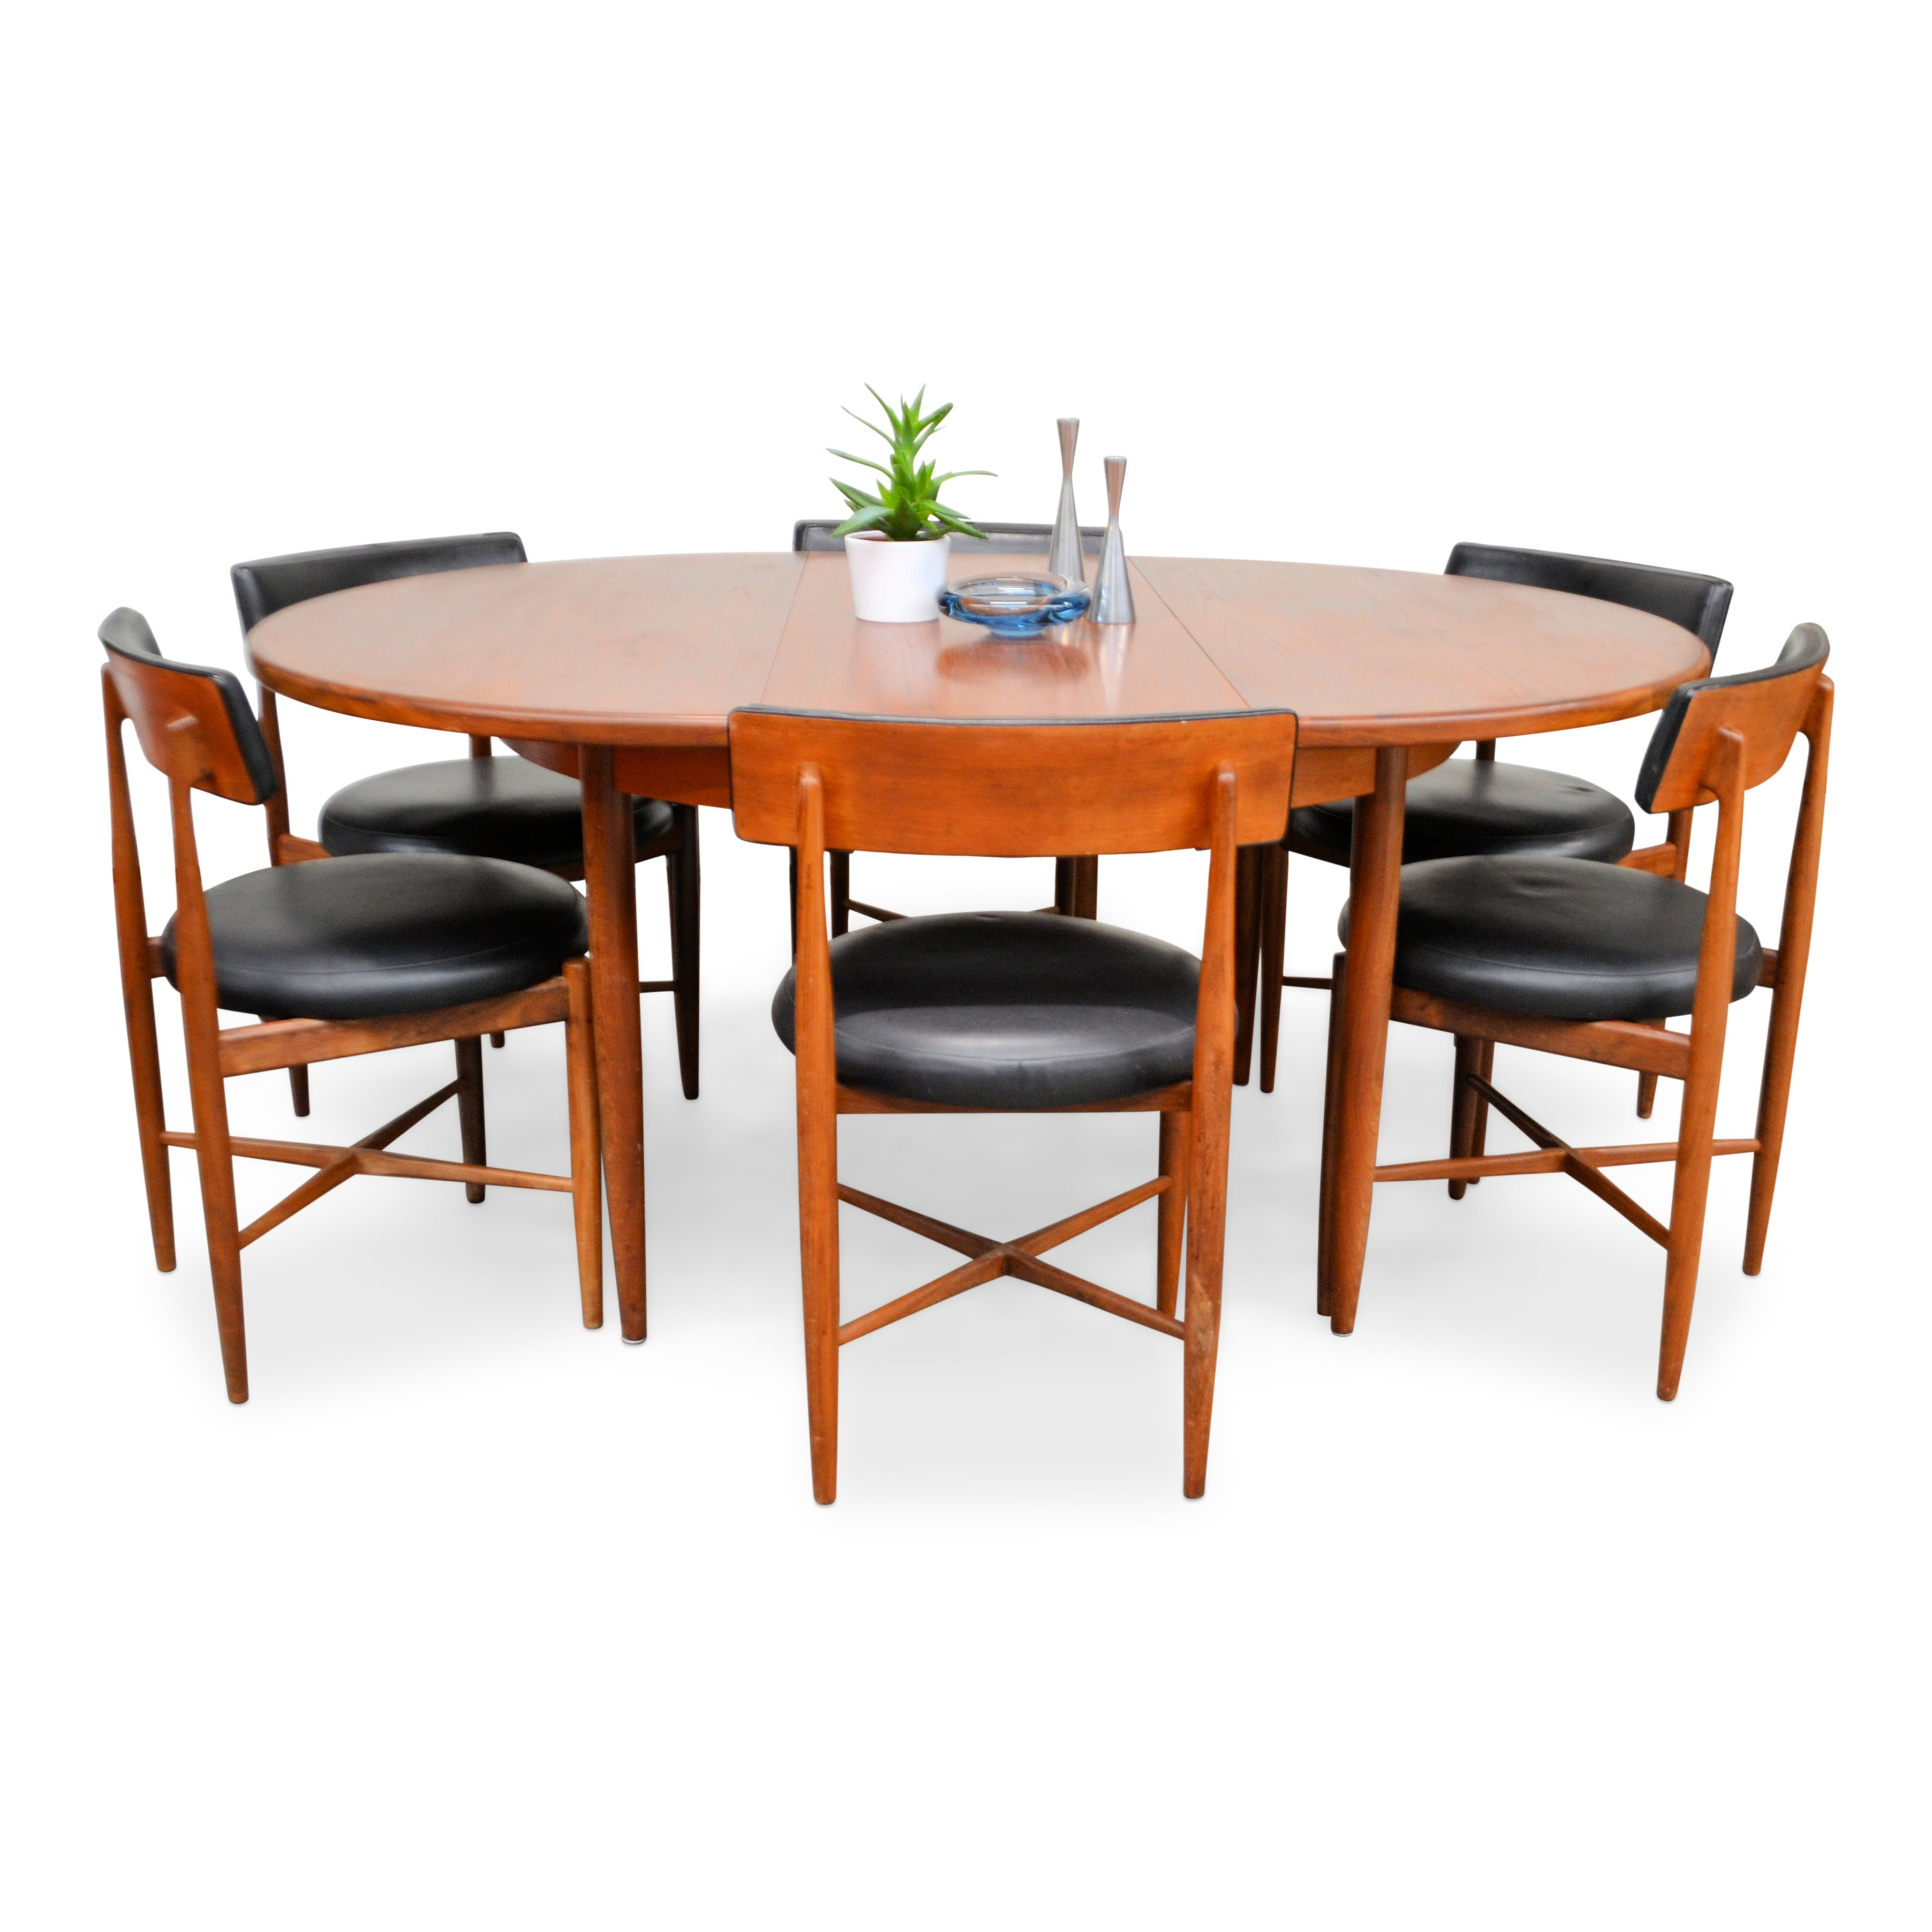 Cucina Letters Kitchen Decor, Vintage G Plan Teak Dining Table With 6 Dining Chairs 143050